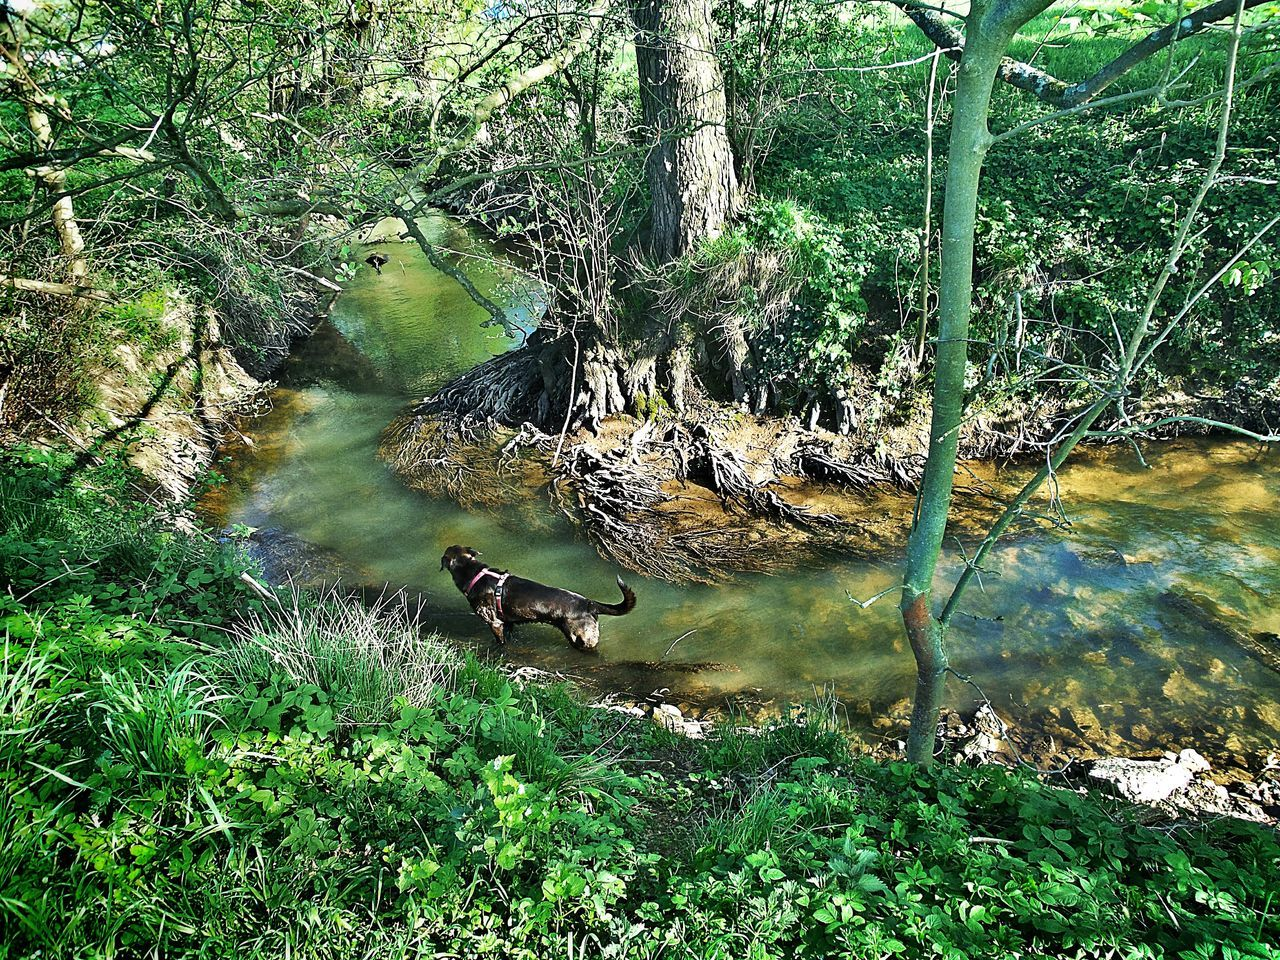 Down By The Creek Green Hell in Germany🇩🇪 Langenselbold Light And Shadow Green Color Water Tree Roots  Roots Reflections Dog Dog Taking A Bath First Summer Day Animal Themes Animals In The Wild Nature Tree Outdoors Landscapes Creekside Photography Day Long Goodbye The Secret Spaces The Great Outdoors - 2017 EyeEm Awards BYOPaper!